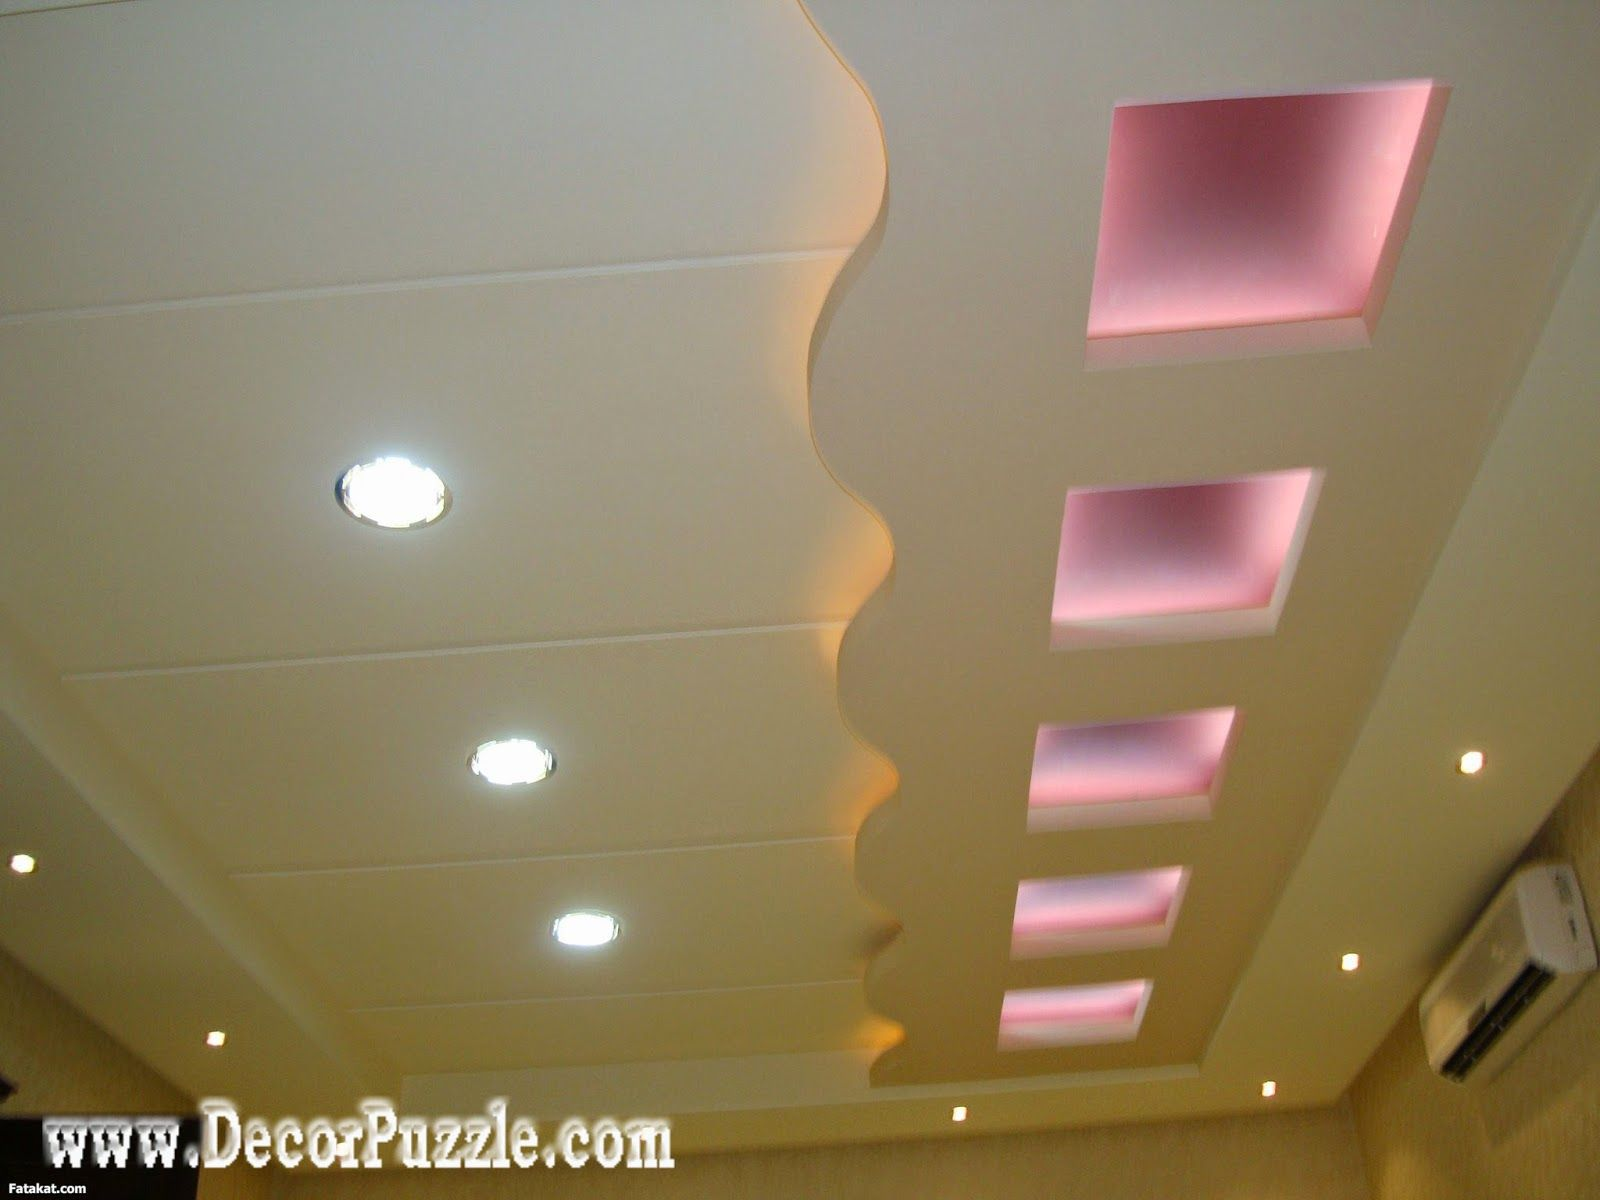 contemporary false ceiling design for living room, plasterboard